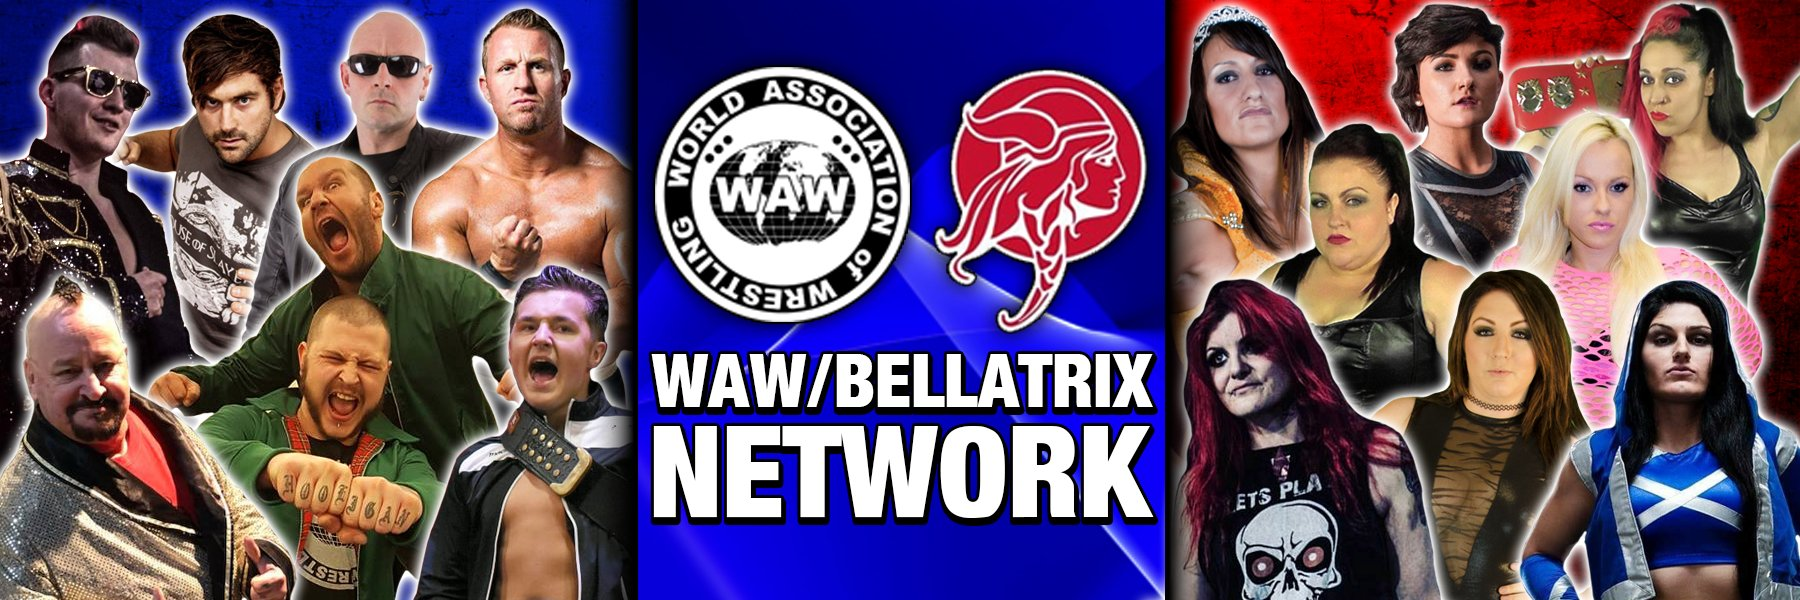 Welcome to the WAW and Bellatrix network.